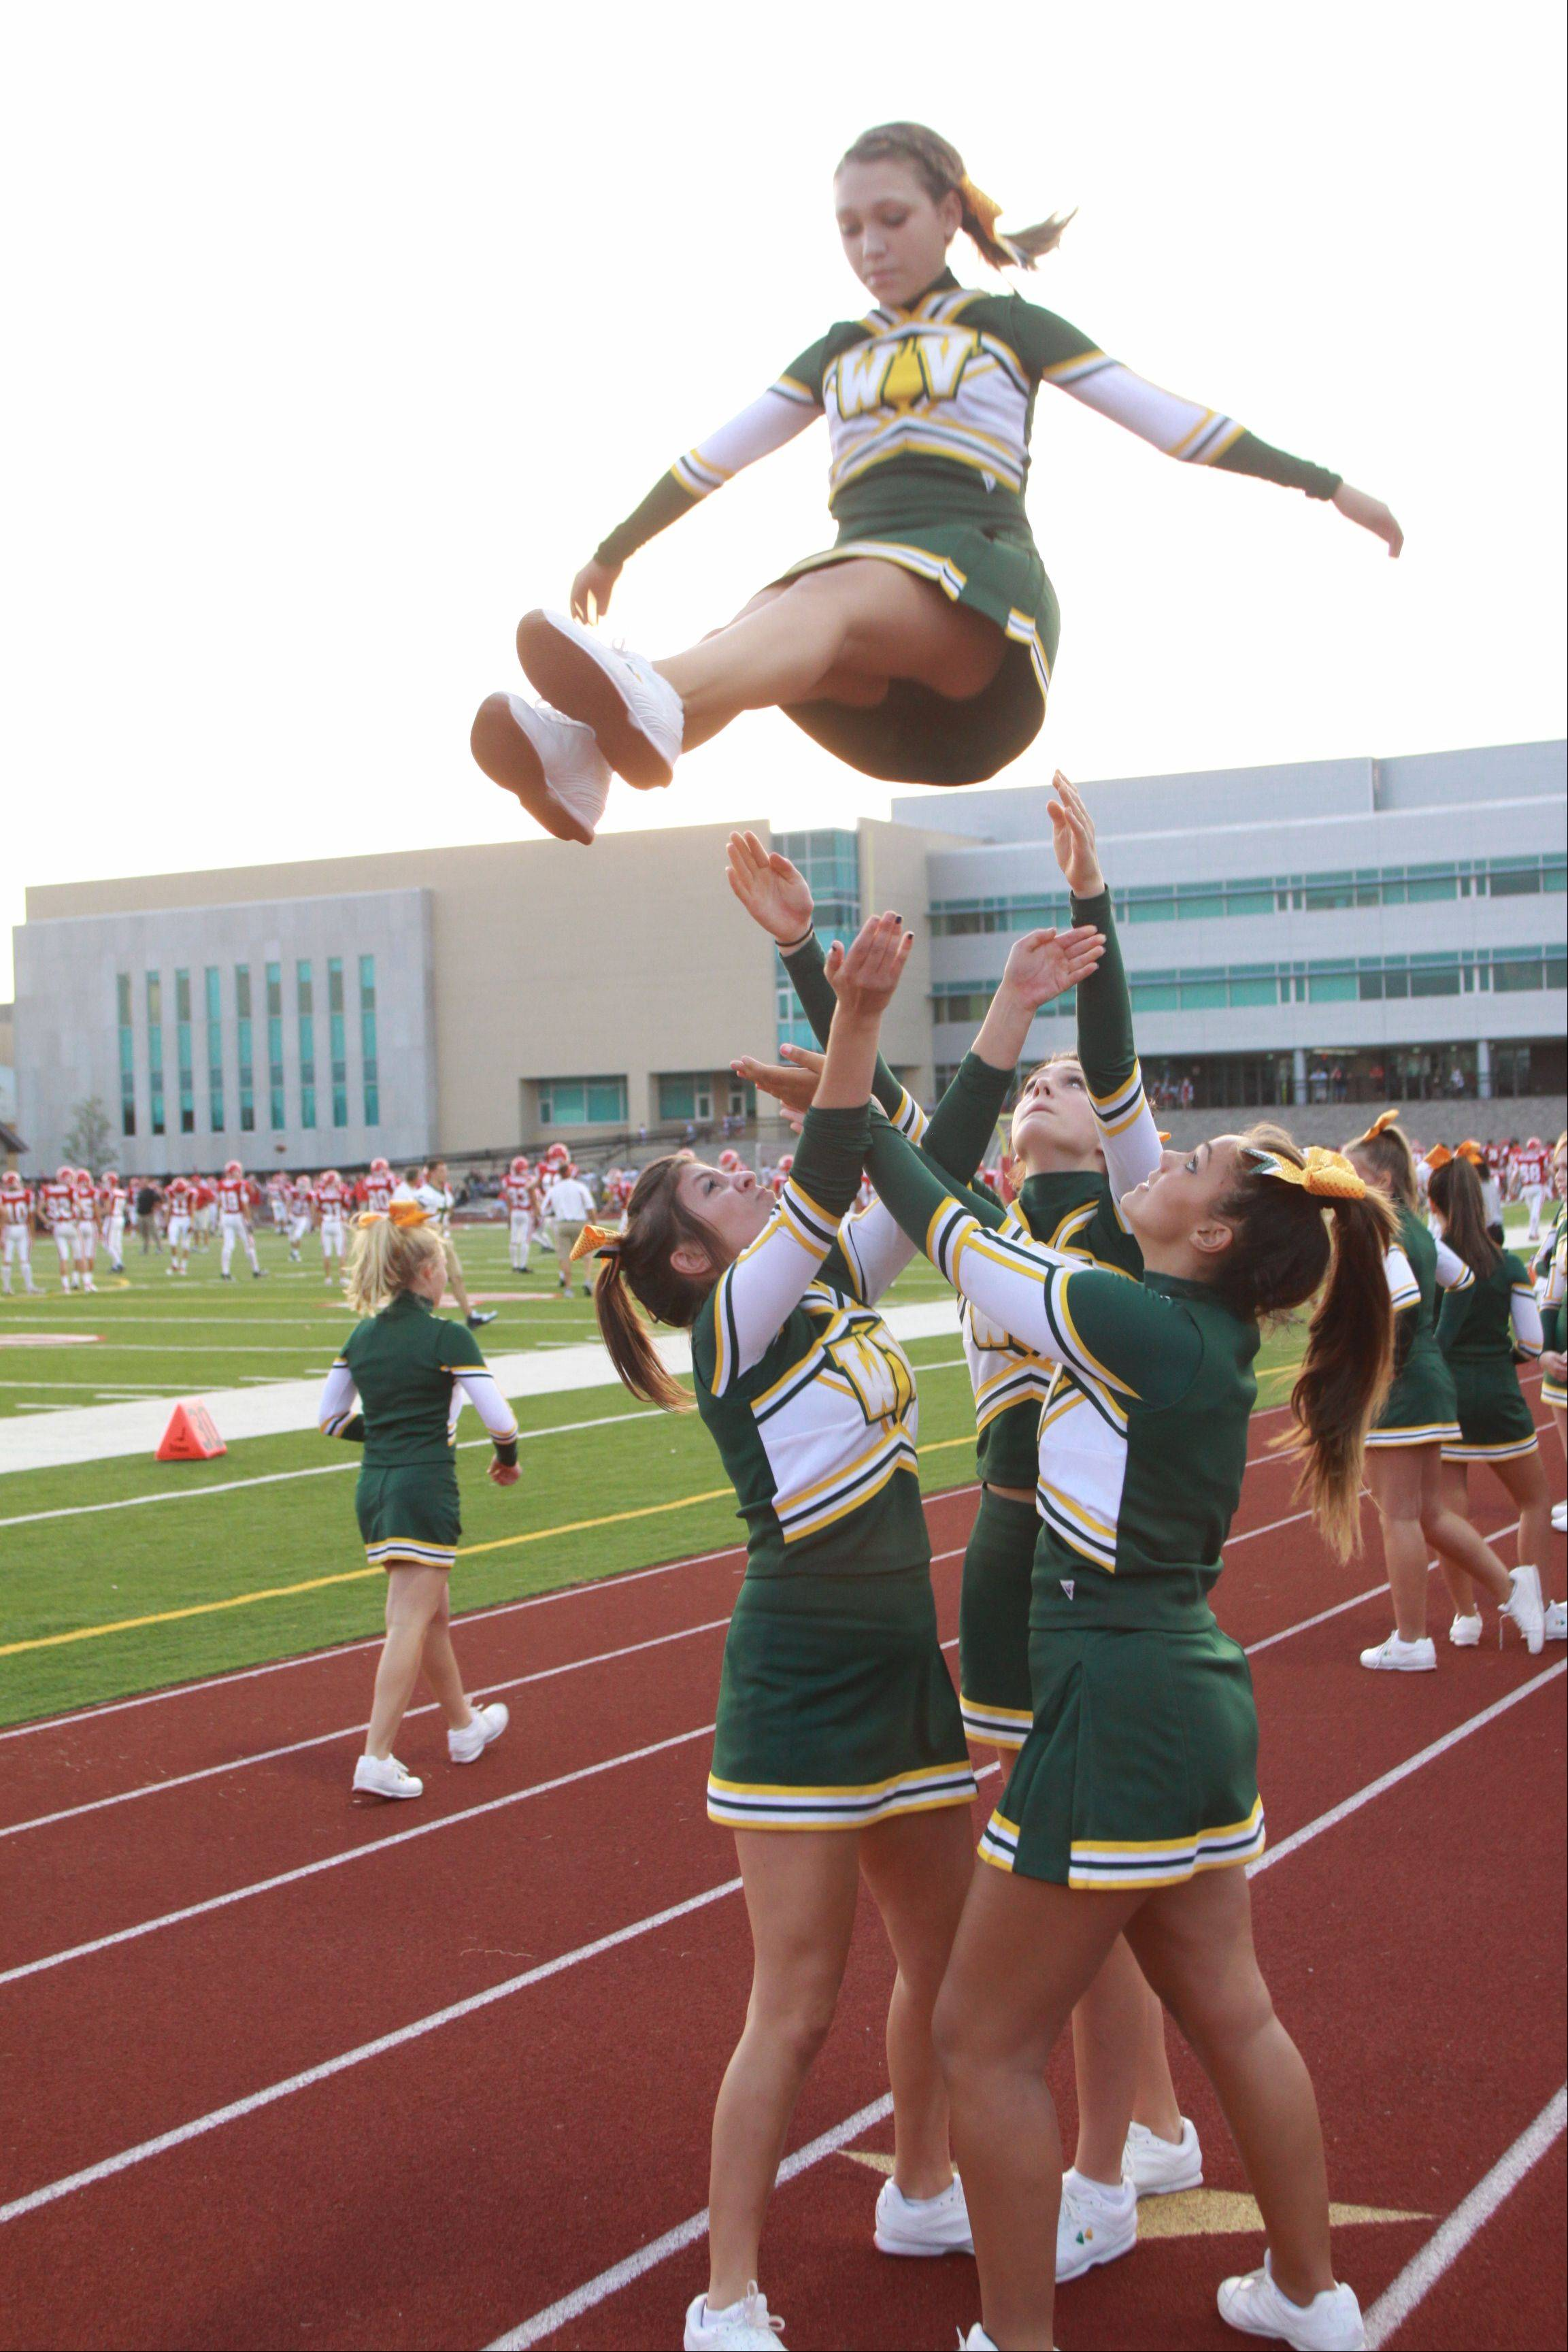 Week 1 - Photos from the Waubonsie Valley vs. Naperville Central football game in Naperville on August 26th.